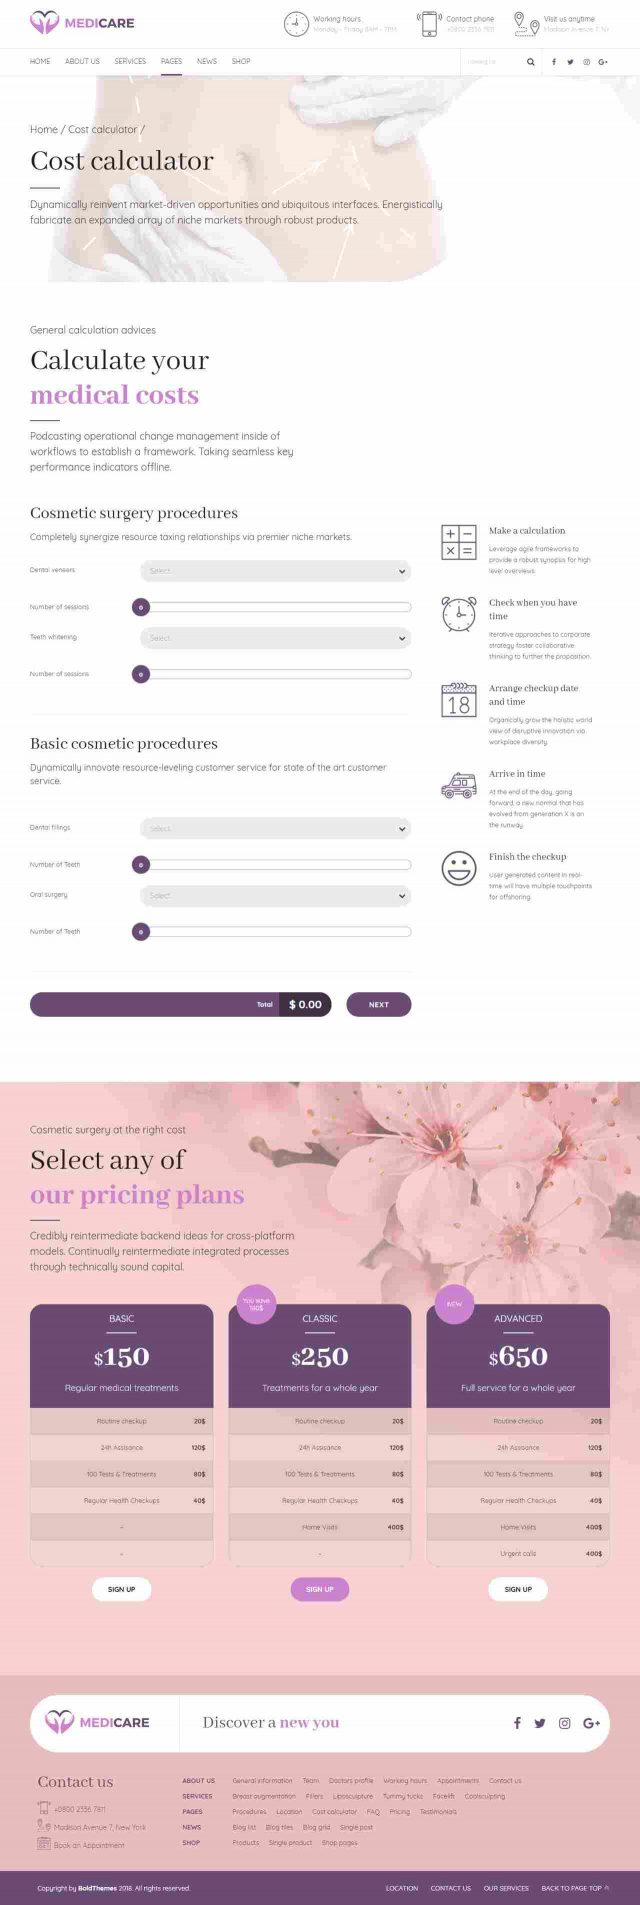 http://cost-calculator.bold-themes.com/new-main-demo/wp-content/uploads/sites/2/2018/04/medicare-cosmetic-surgery-640x1905.jpg